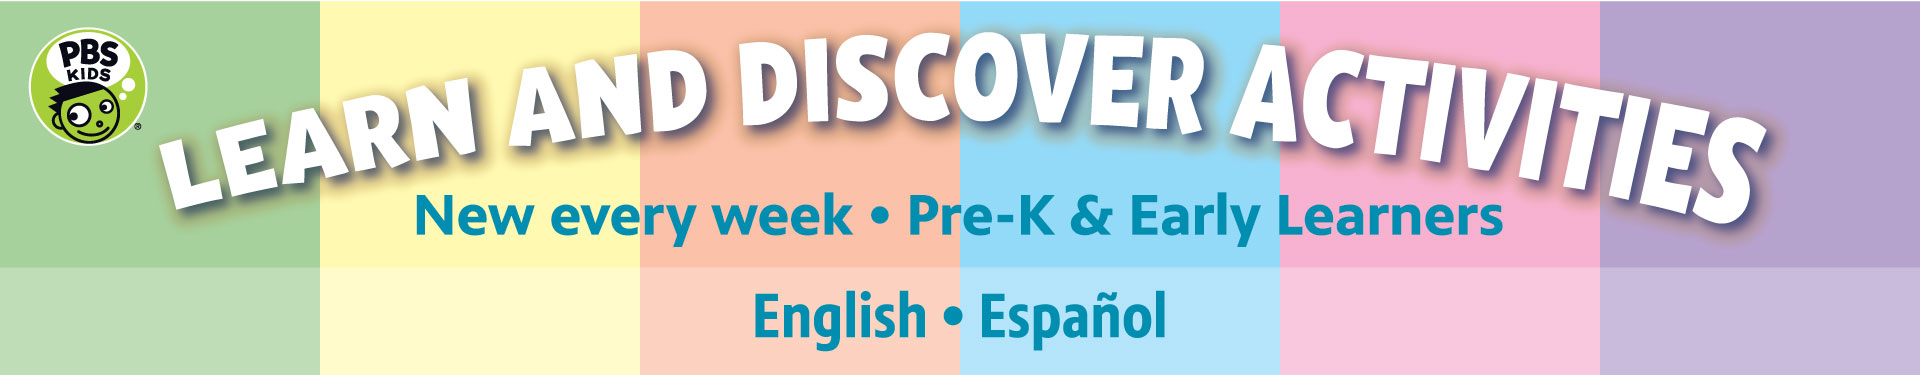 Learn and Discover Activities | New every week • Pre-K and Early Learners